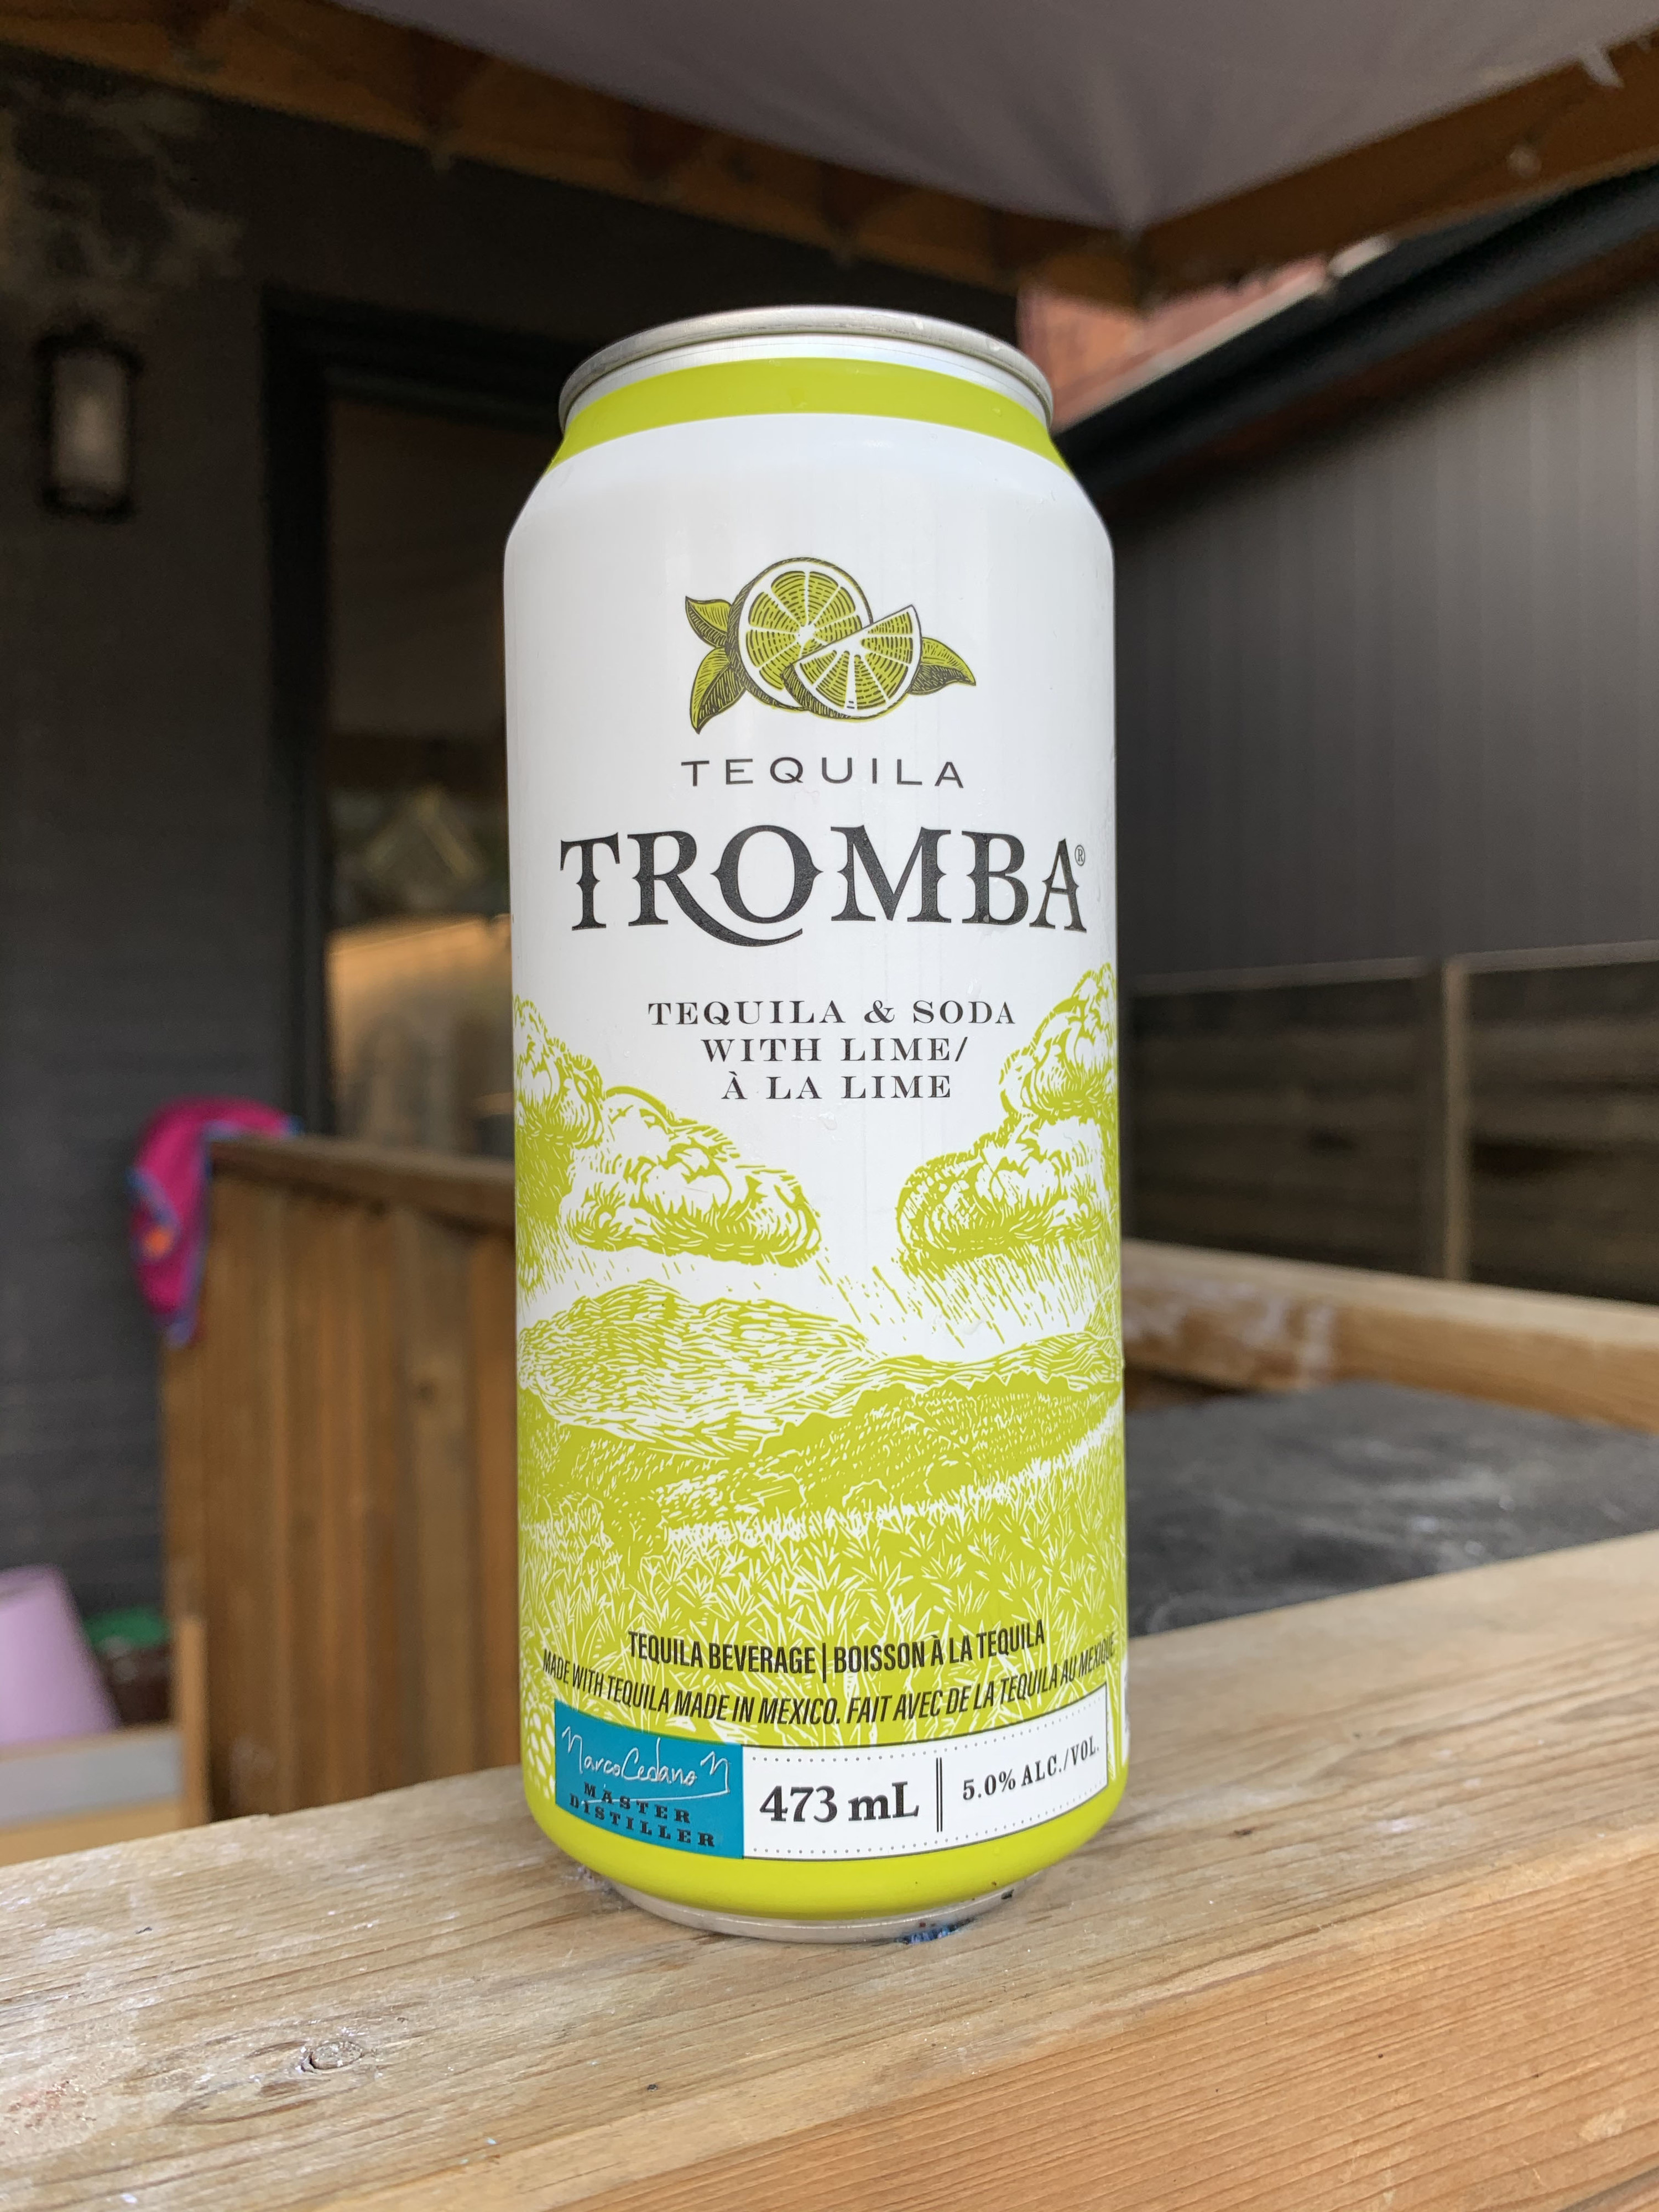 A can of Tequila Tromba with a green landscape illustration on the front of the can with illustrations of limes at the top.